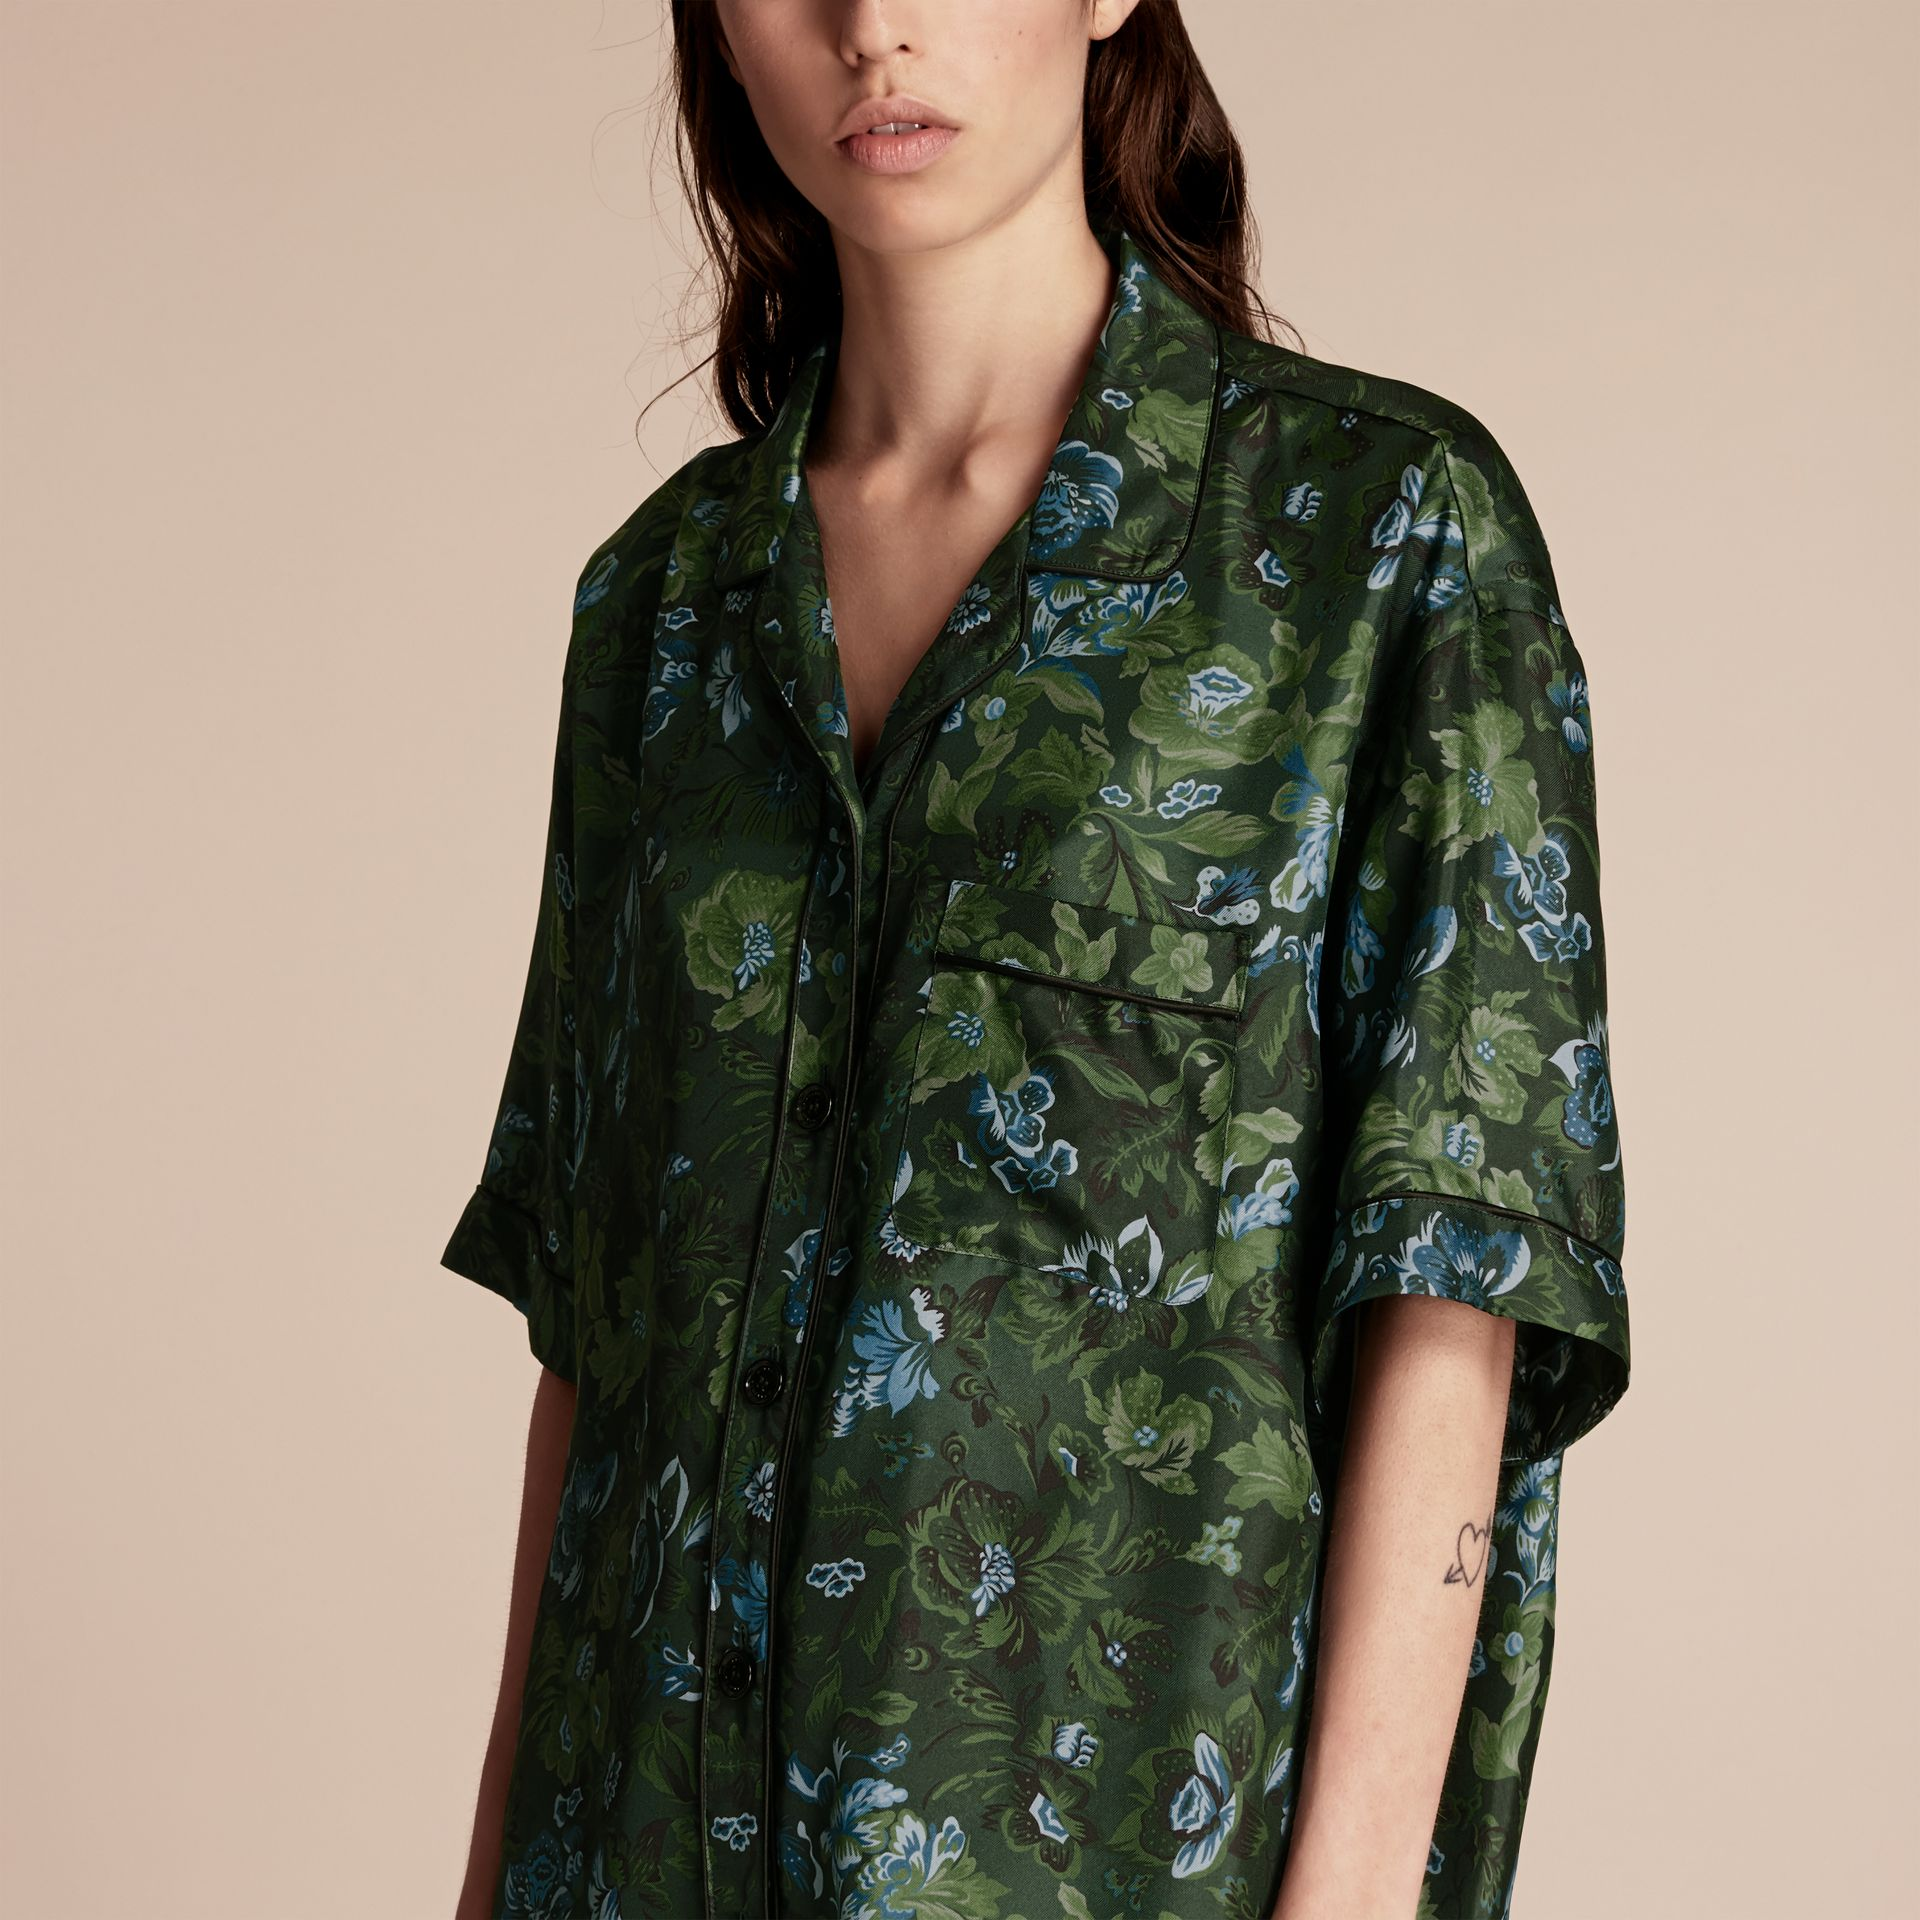 Forest green Short-sleeved Floral Print Silk Pyjama-style Shirt Forest Green - gallery image 5